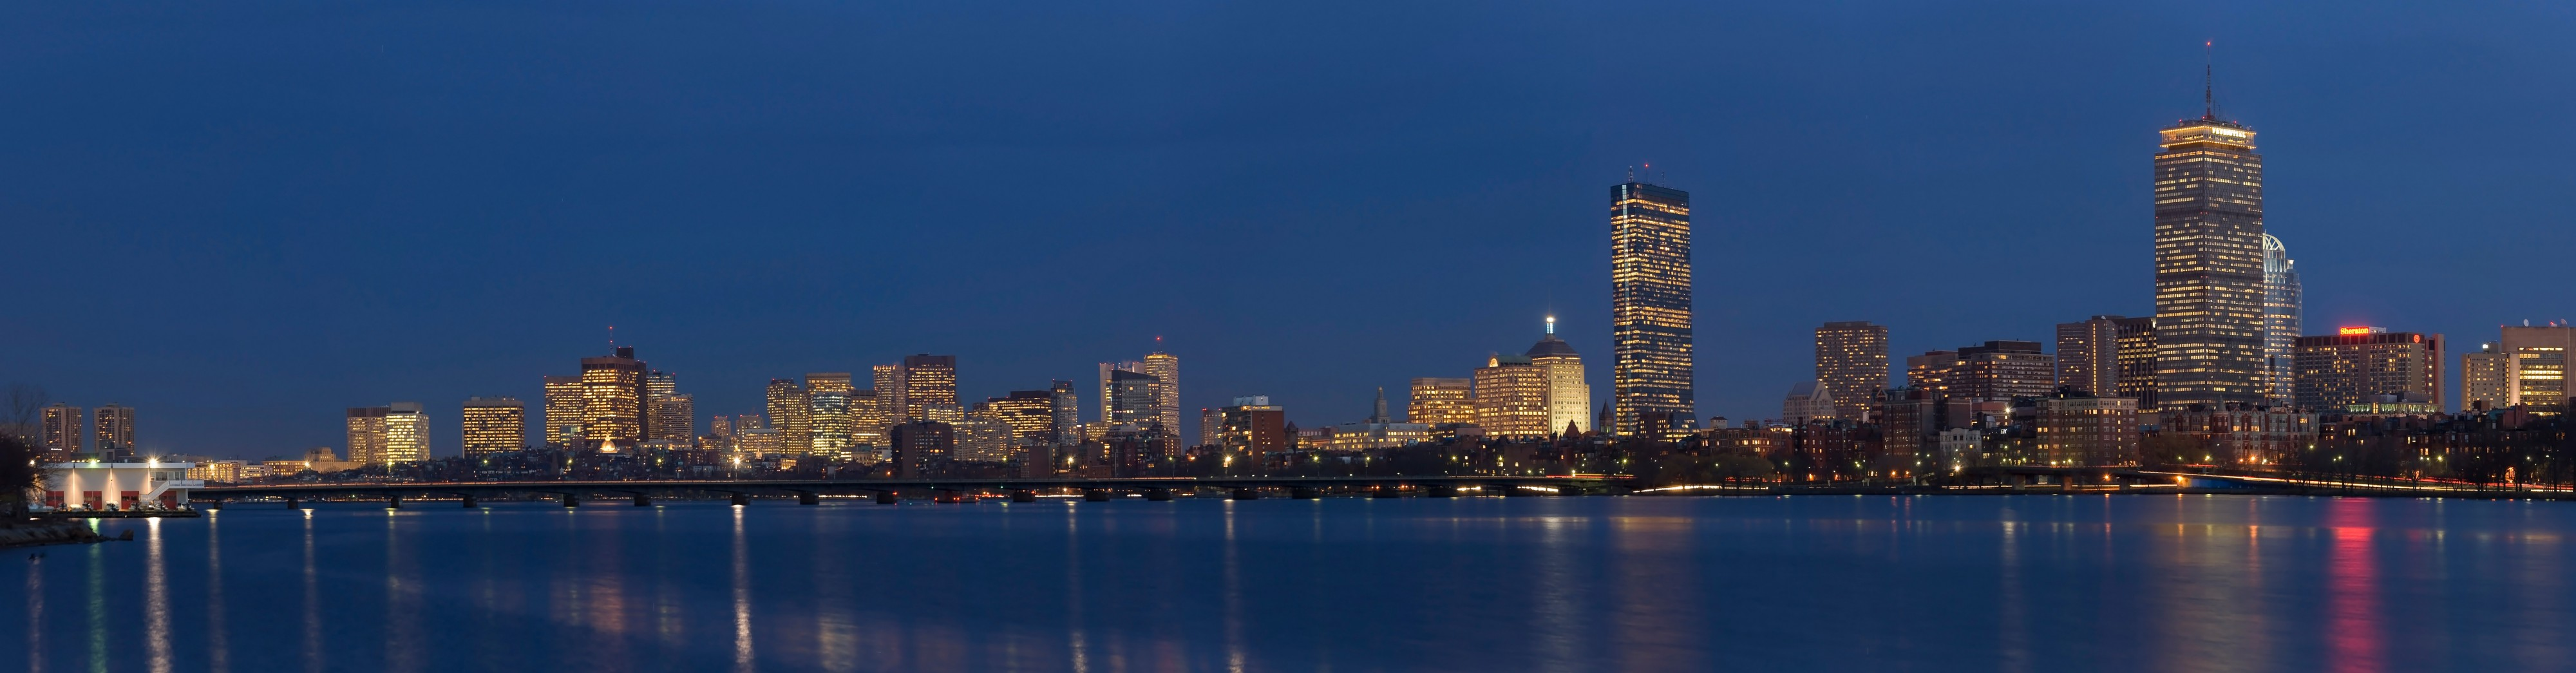 Boston Skyline Panorama Dusk Edit 1